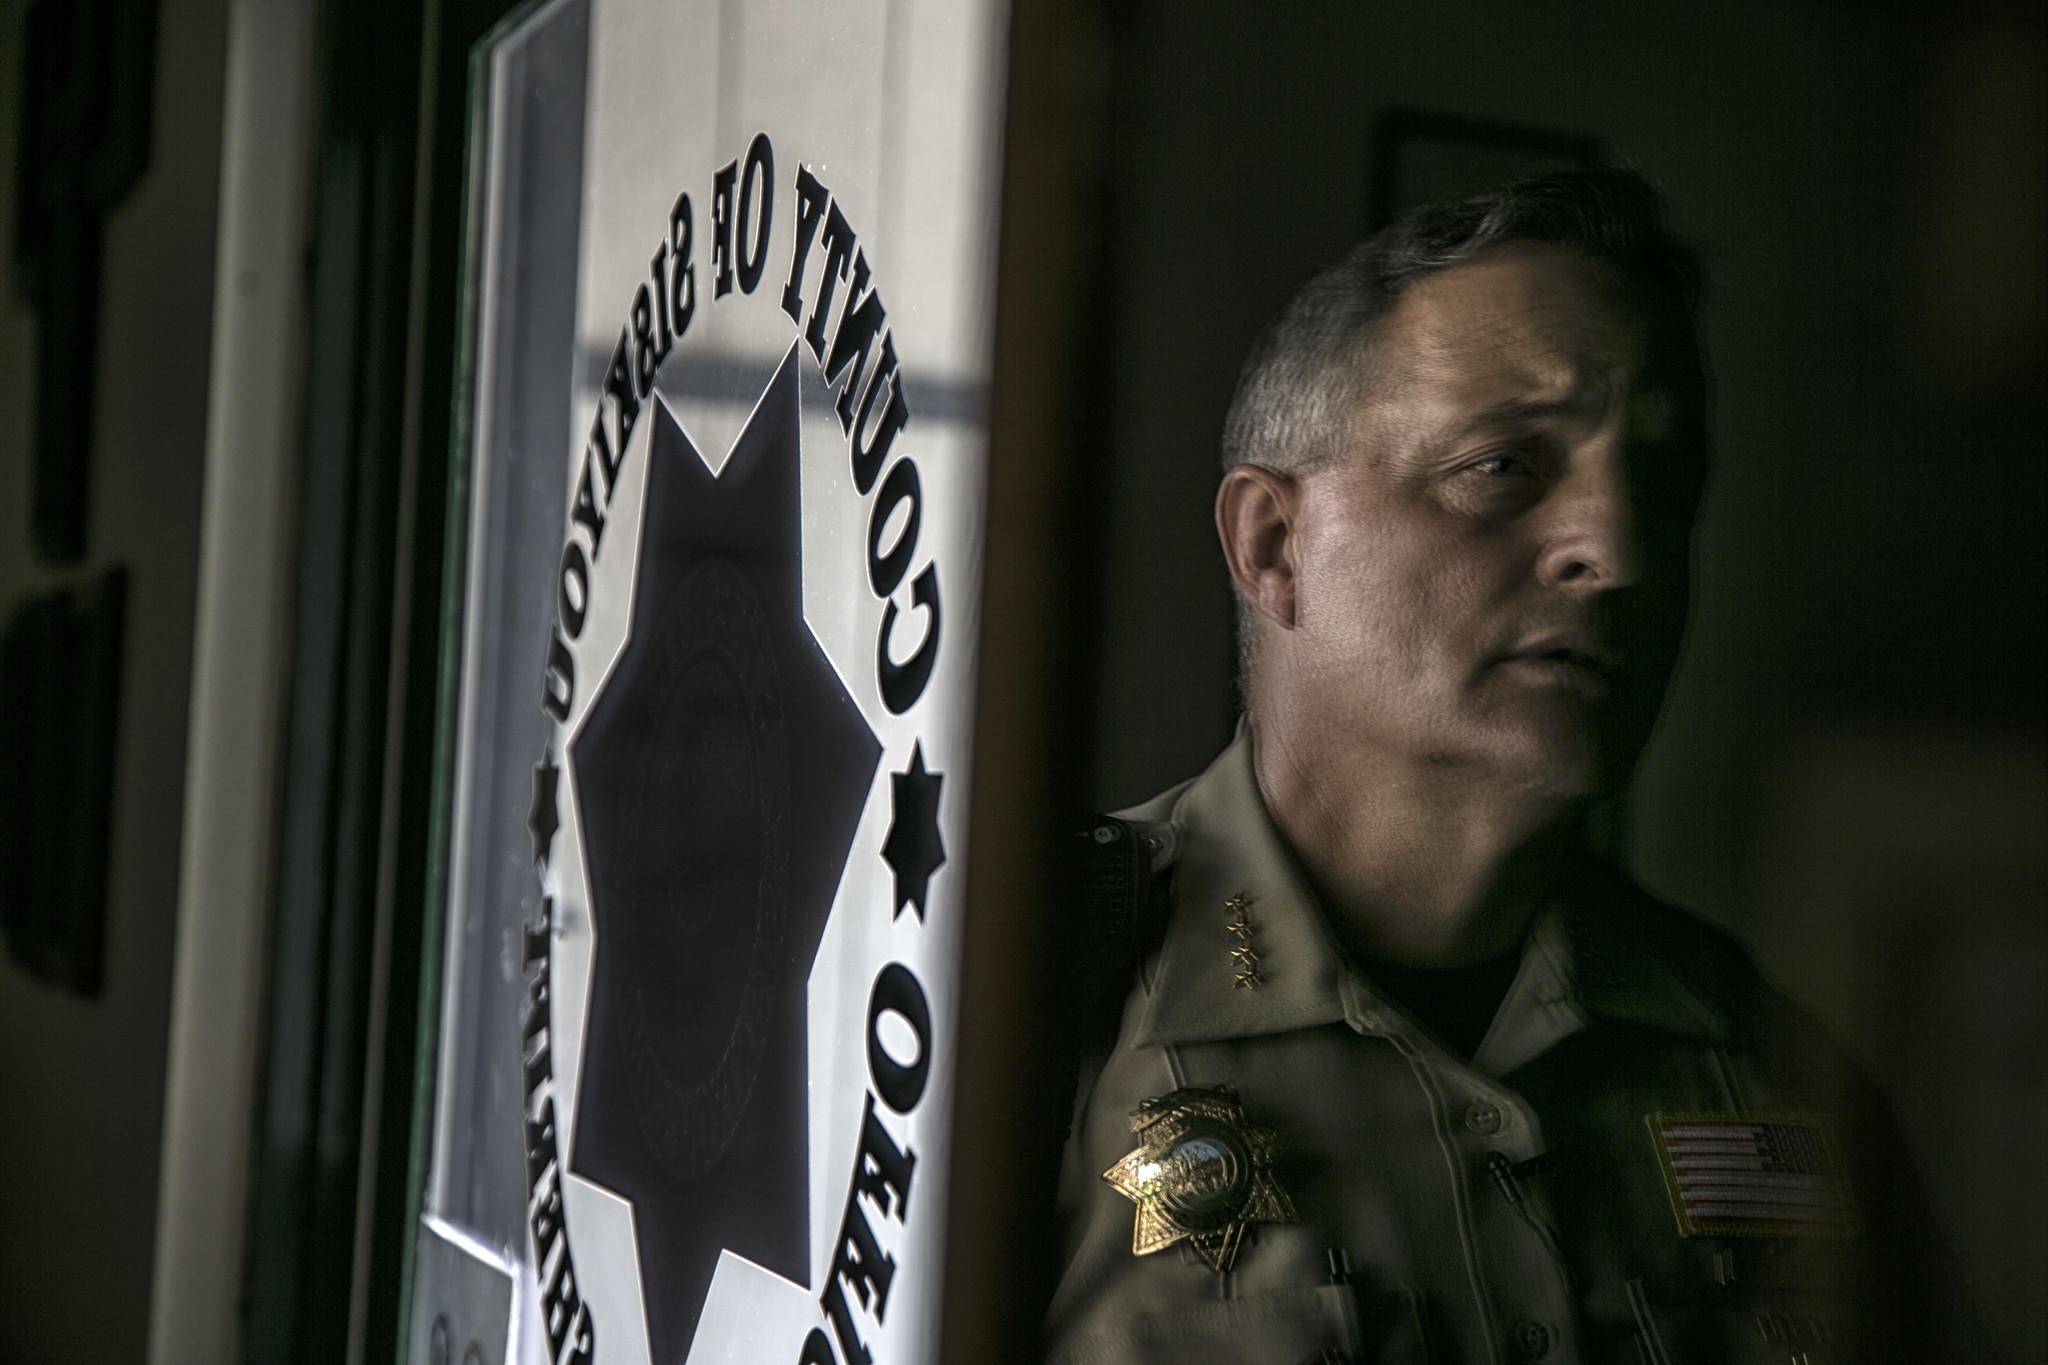 Sheriff John Lopey runs a department that patrols the vast area of Siskiyou County near the Oregon border and Mt. Shasta.